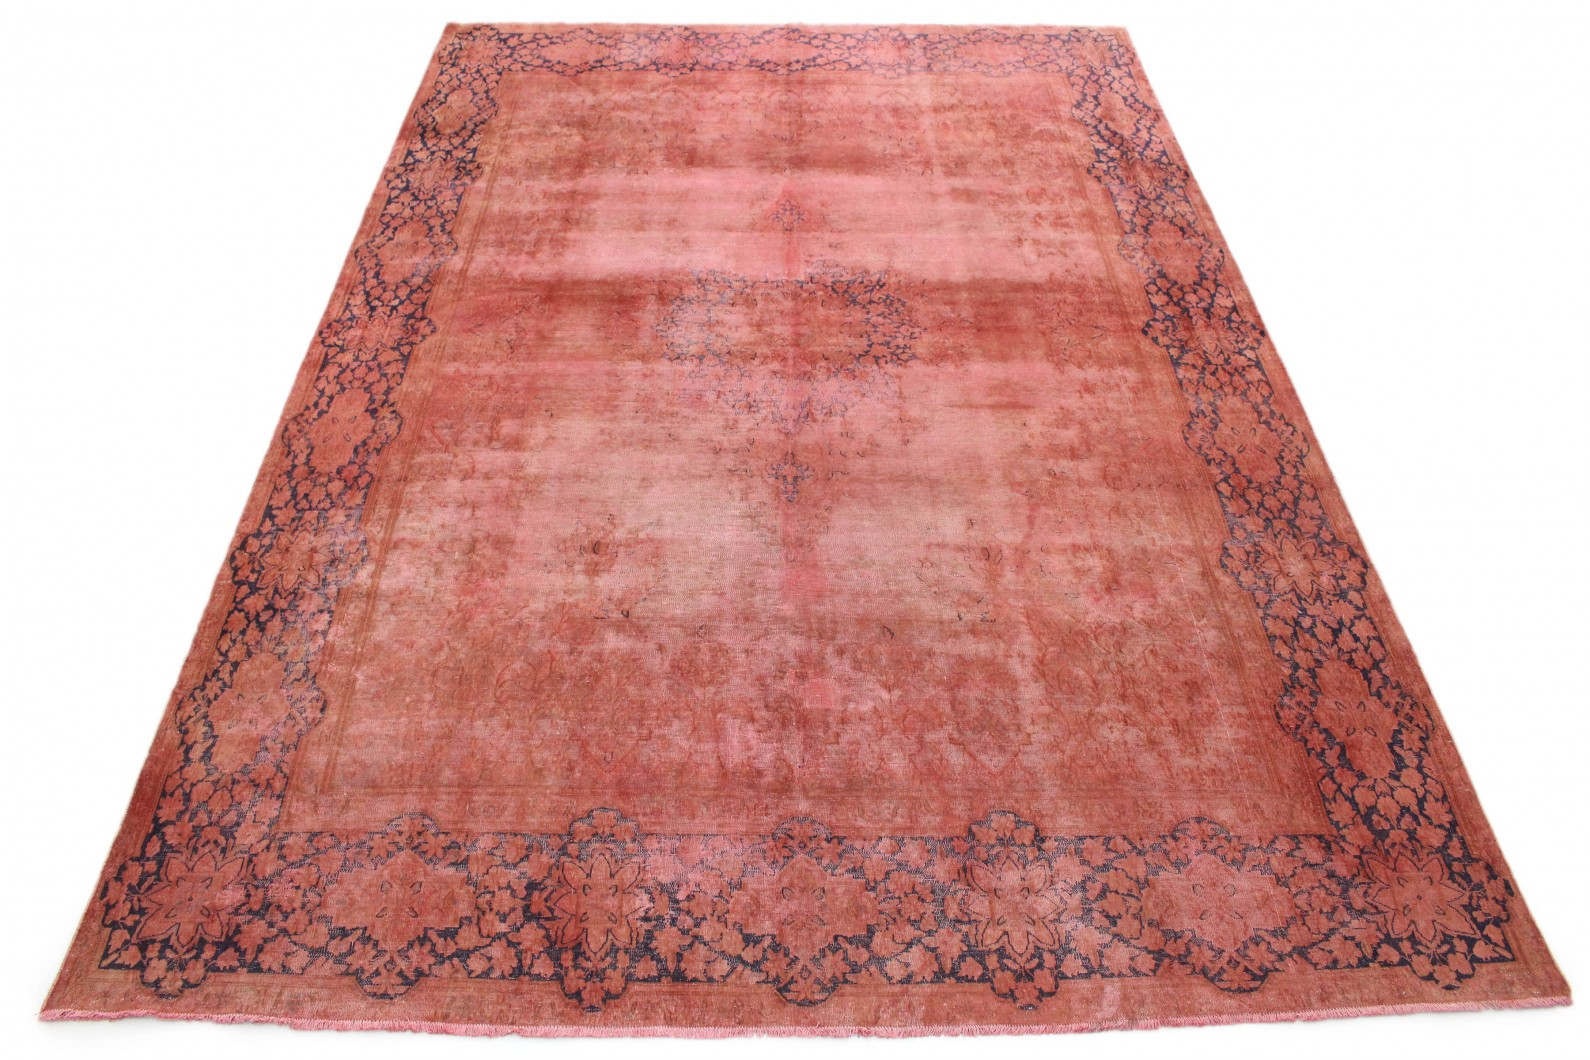 Vintage Teppich Rot Rosa in 420x290 (1 / 4)